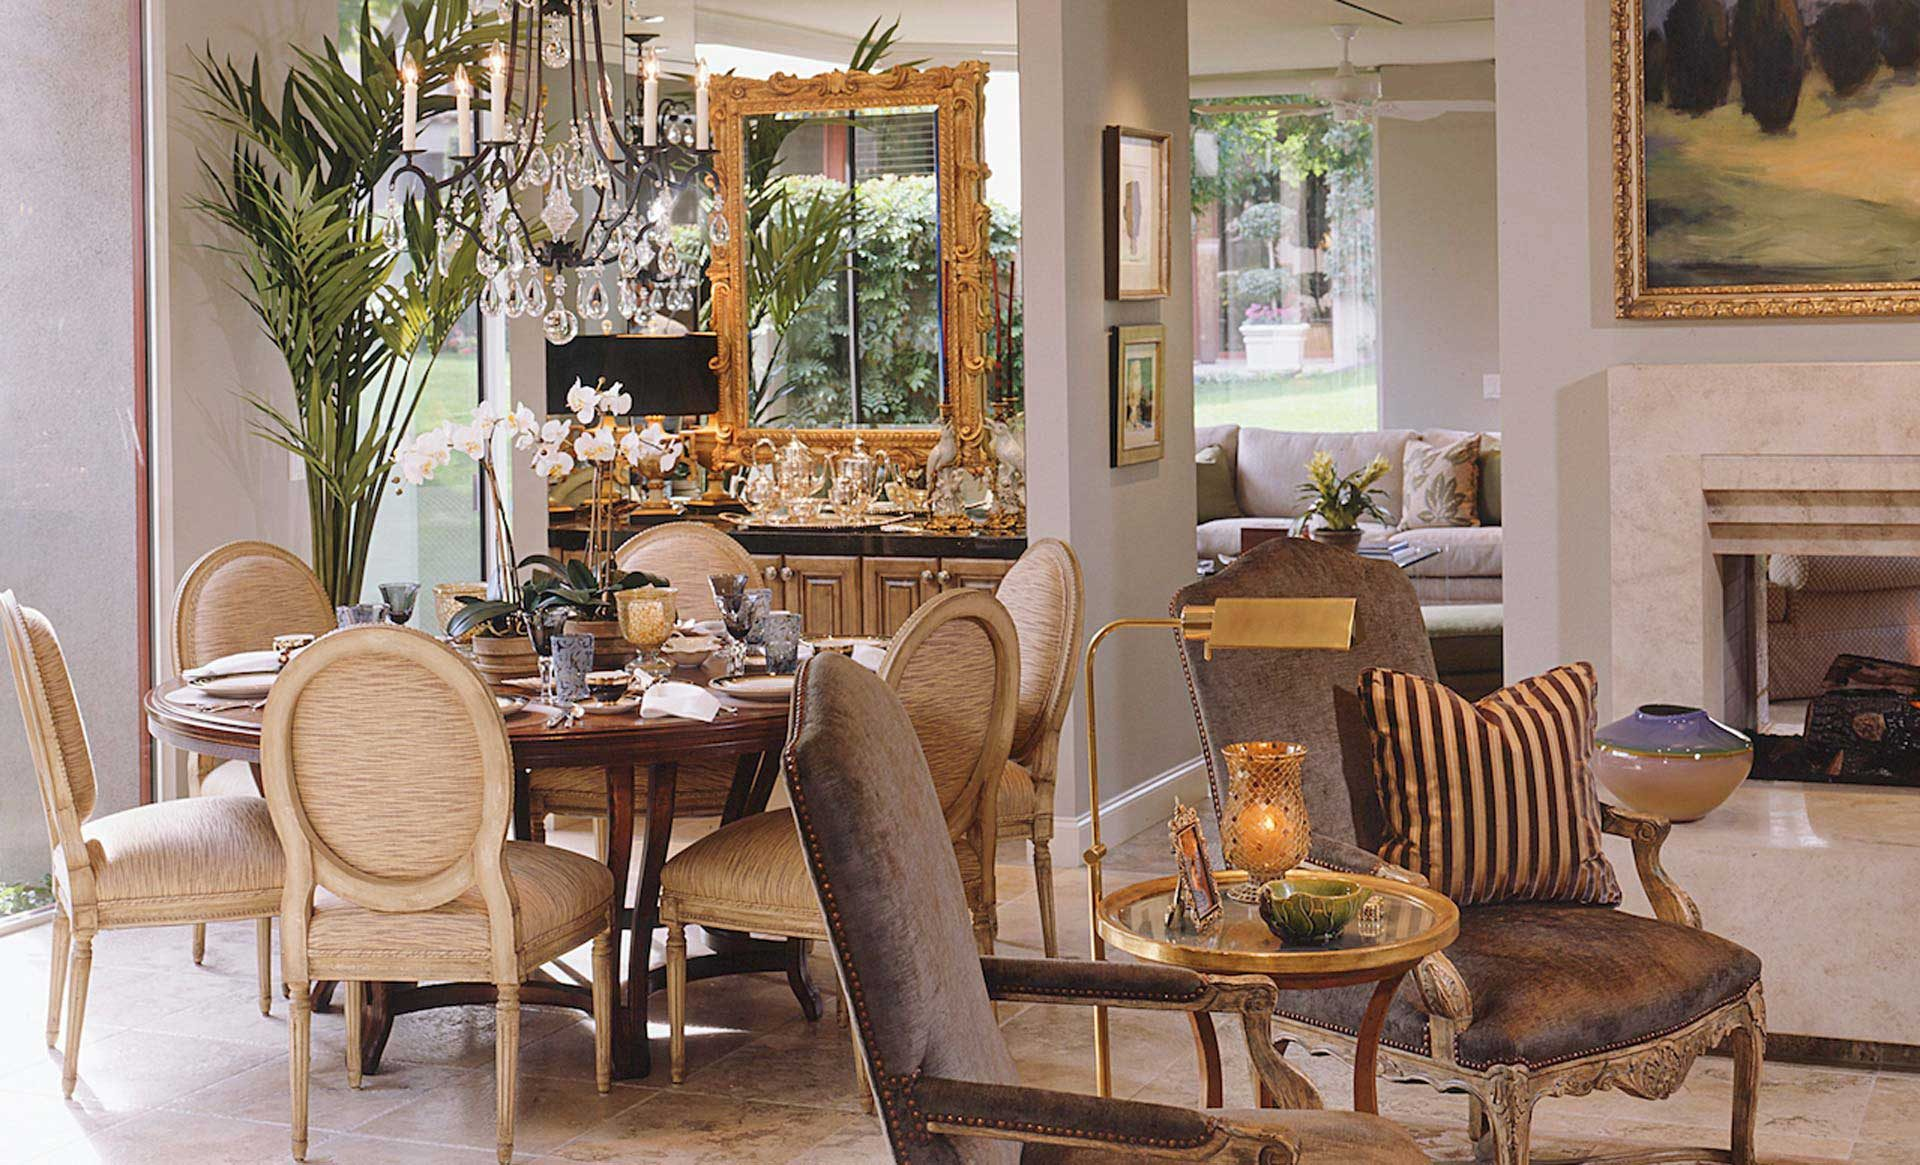 Tampa Interior Design transitional dining room